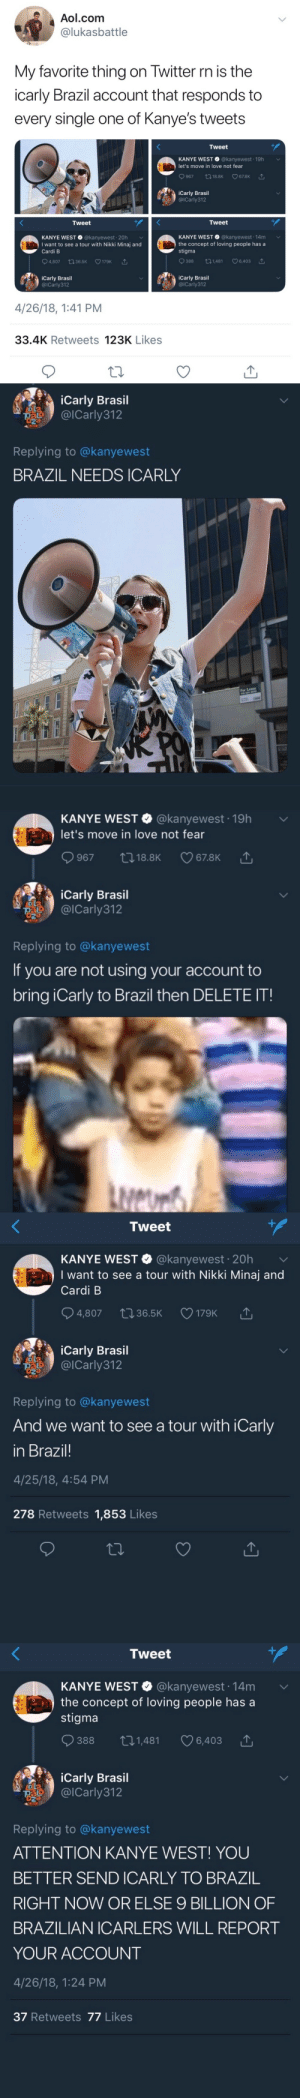 aol: Aol.com  lukasbattle  My favorite thing on Iwitter rn is the  icarly Brazil account that responds to  every single one of Kanye's tweets  Tweet  KANYE WEST @kanyewest 19h  let's move in love not fear  9967 18.8K CO 67.8K △  iCarly Brasil  @ICarly312  Tweet  Tweet  KANYE WEST @kanyewest 20h  I want to see a tour with Nikki Minaj and  Cardi B  KANYE WEST @kanyewest 14m  the concept of loving people hasa  stigma  04,807 ロ36.5K V179K  388 t01,481 6,403  iCarly Brasil  @ICarly312  iCarly Brasil  @lCarly312  4/26/18, 1:41 PM  33.4K Retweets 123K Likes   iCarly Brasil  麗 ▽)' @ICarly31 2  Replying to @kanyewest  BRAZIL NEEDS ICARLY  alo   KANYE WEST @kanyewest 19h  let's move in love not fear  iCarly Brasil  @lCarly312  Replying to @kanyewest  If you are not using your account to  bring iCarly to Brazil then DELETE IT!   Tweet  KANYE wEST·@kanyewest. 20h ﹀  I want to see a tour with Nikki Minaj and  Cardi B  4,807 t036.5K 179K  '↑  iCarly Brasil  , @lCarly312  Replying to @kanyewest  And we want to see a tour with iCarly  in Brazil!  4/25/18, 4:54 PM  278 Retweets 1,853 Likes   Tweet  KANYE WEST @kanyewest. 14m  the concept of loving people has a  stigma  ﹀  388 ロ1,481 C 6,403  DLa  023  iCarly Brasil  이Carly312  Replying to @kanyewest  ATTENTION KANYE WEST! YOU  BETTER SEND ICARLY TO BRAZ1L  RIGHT NOW OR ELSE 9 BILLION OF  BRAZILIAN ICARLERS WILL REPORT  YOUR ACCOUNT  4/26/18, 1:24 PM  37 Retweets 77 Likes